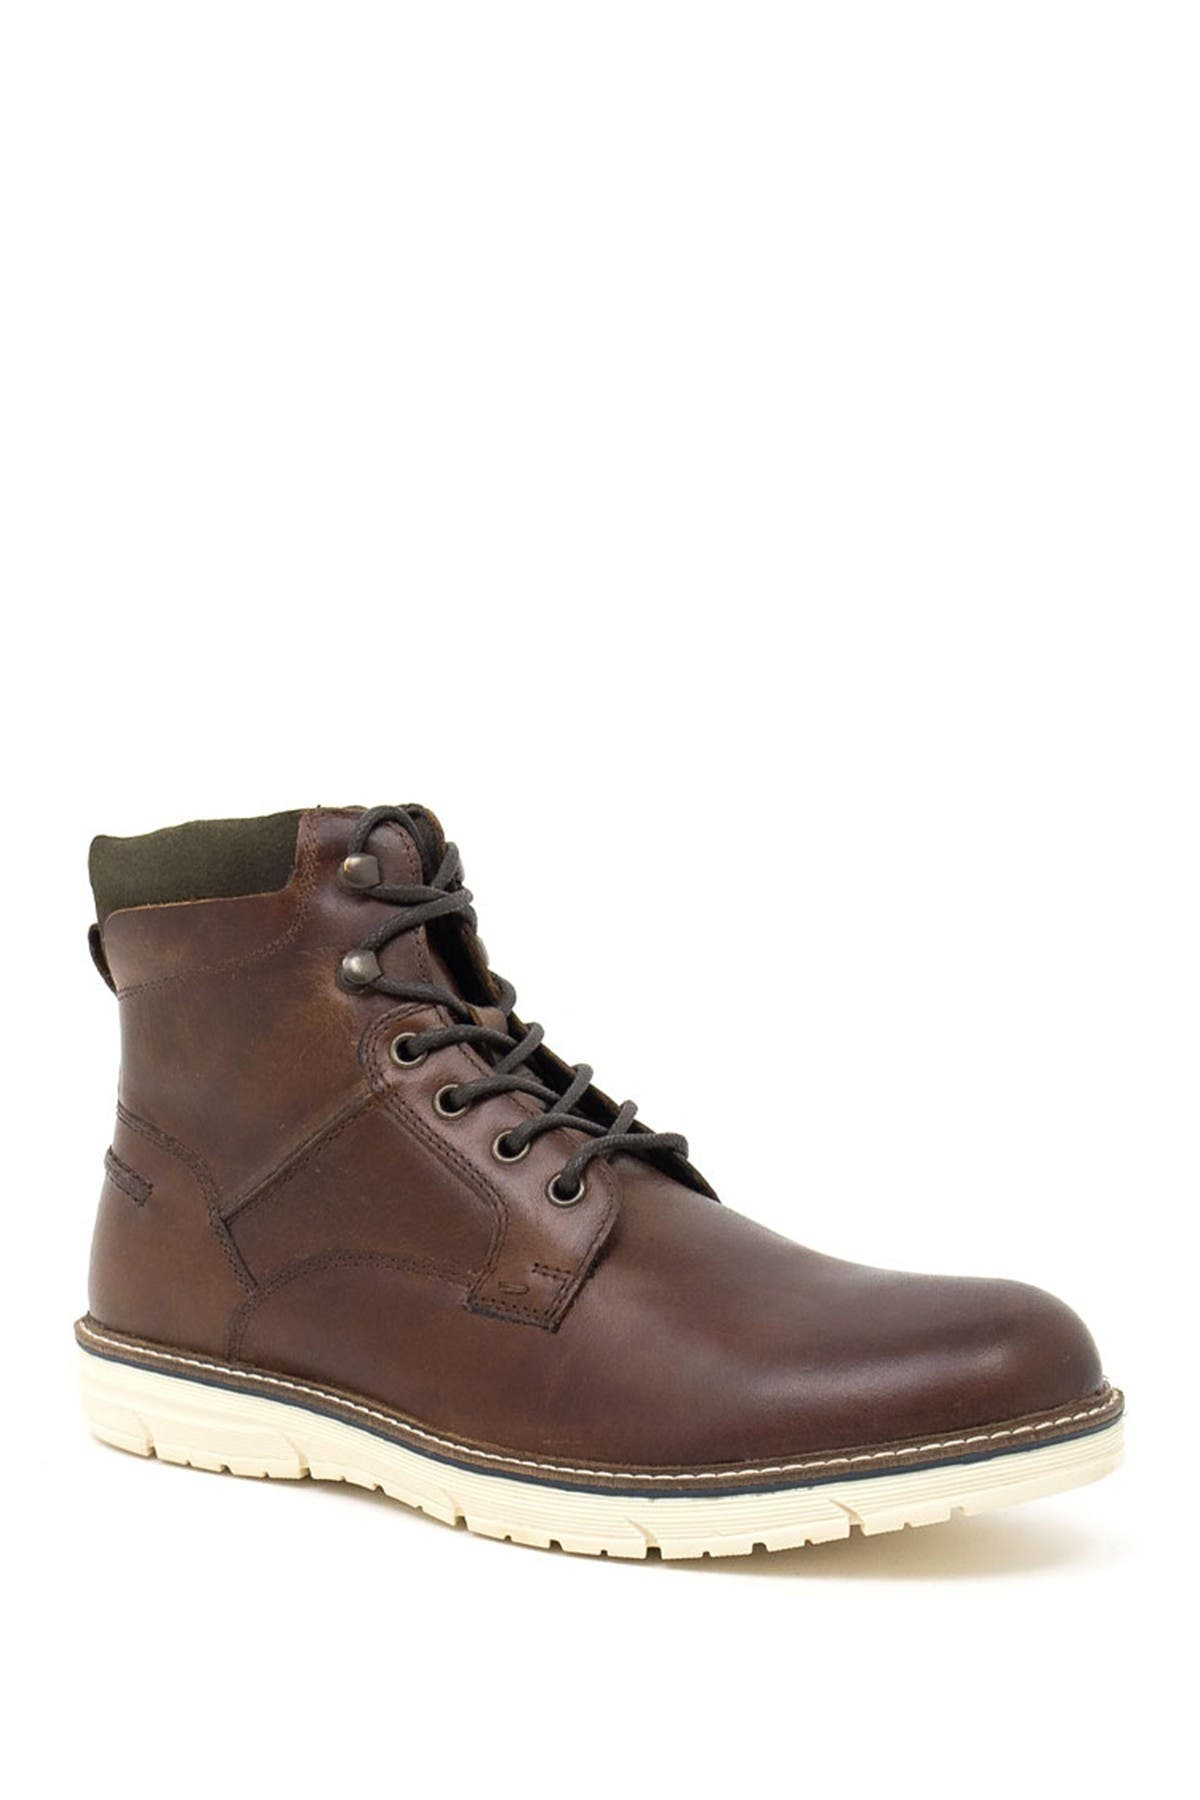 Image of Crevo Emmett Leather Boot